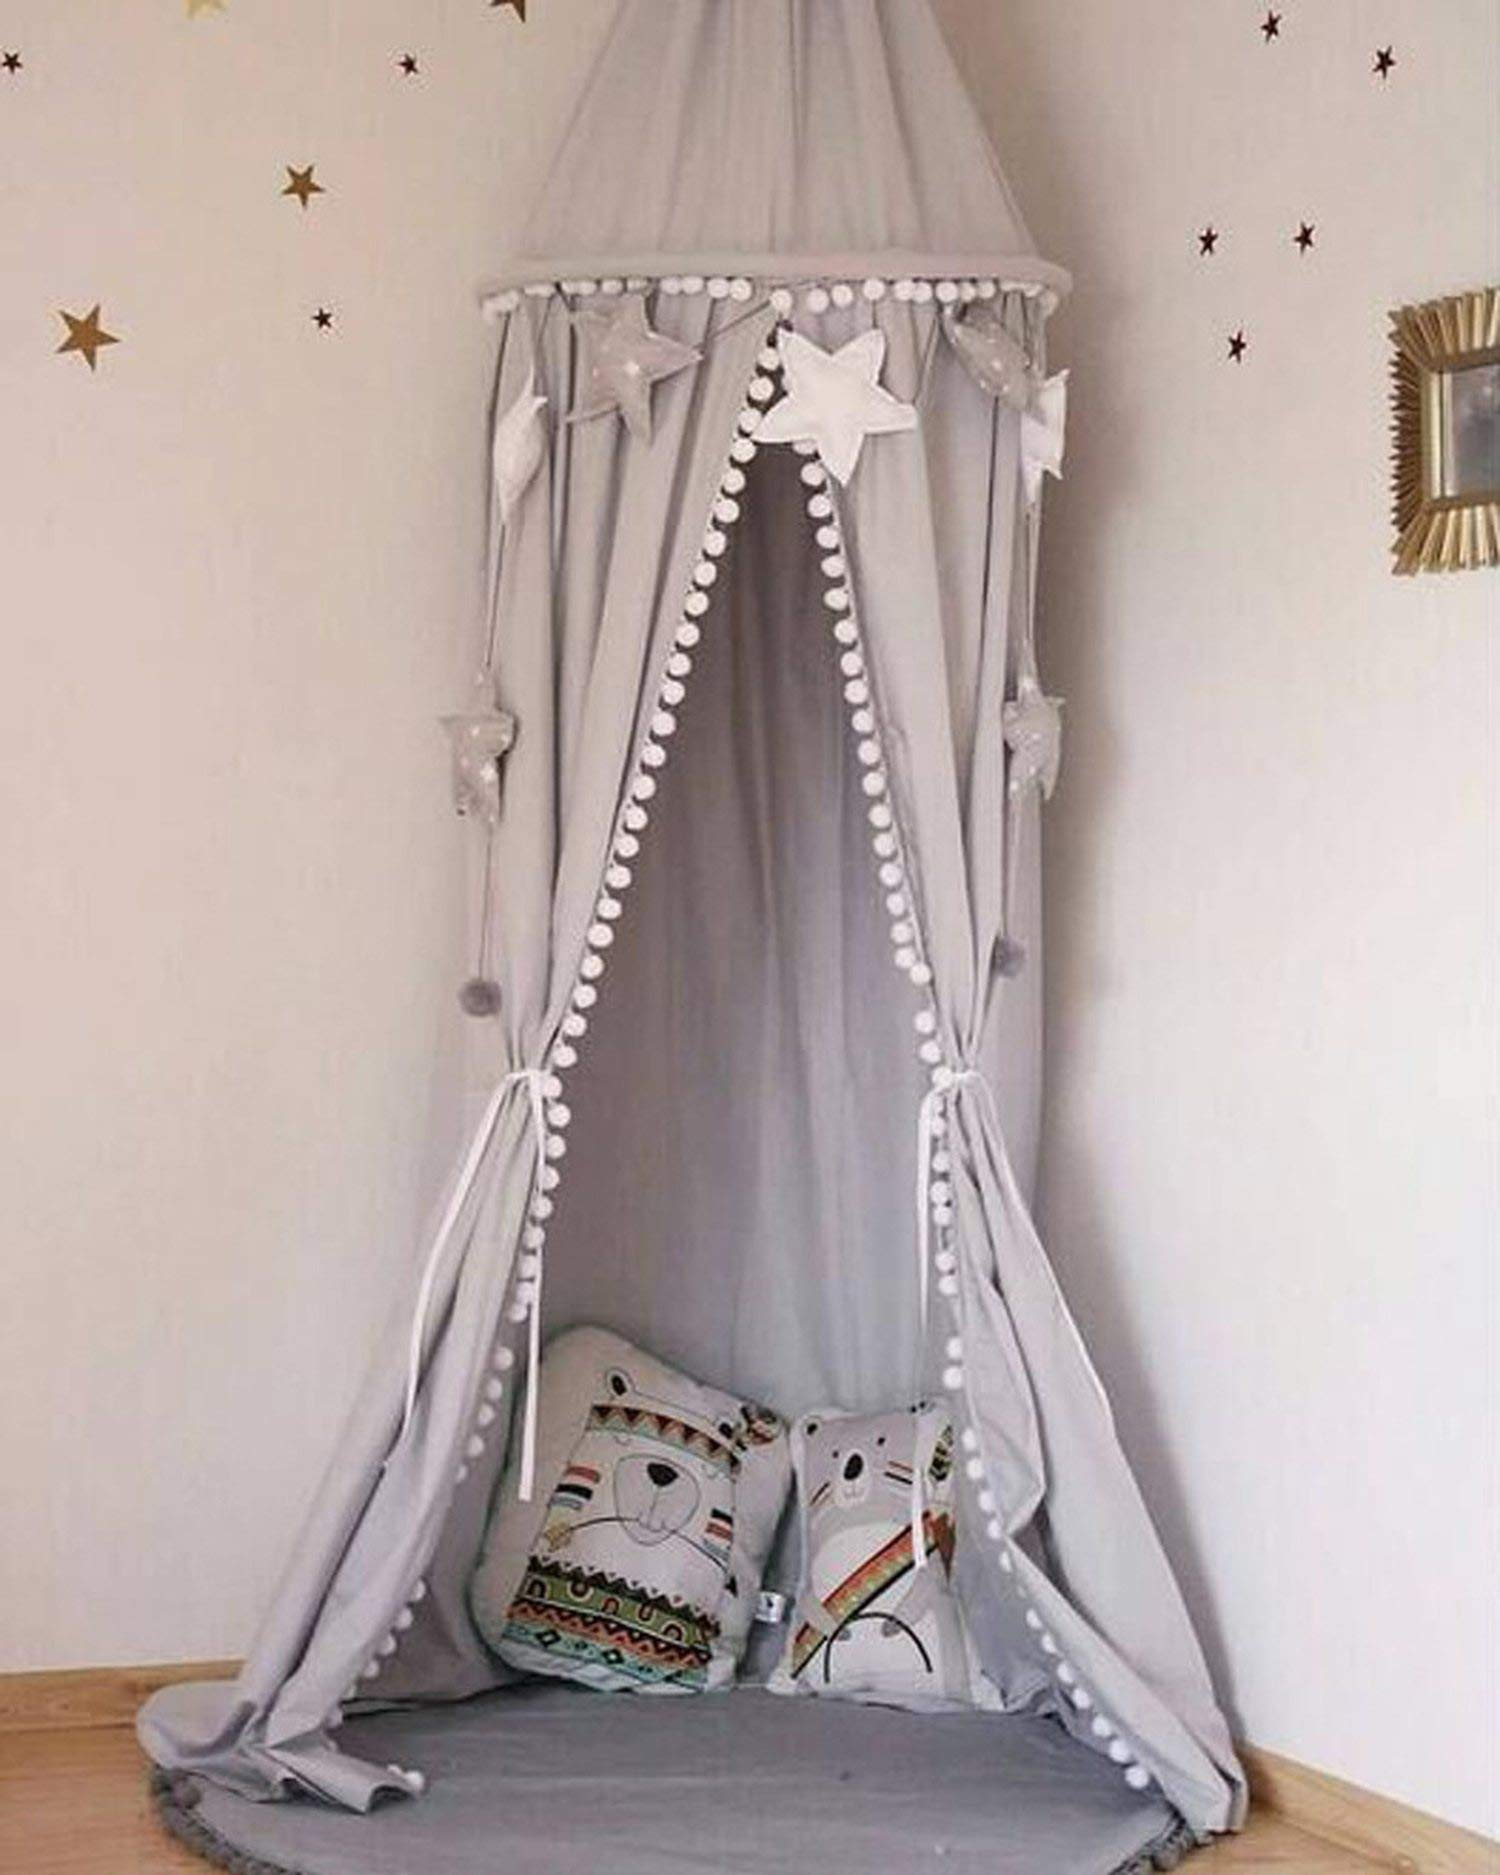 Cotton Baby Room Decoration Balls Mosquito Net Kids Bed Curtain Canopy Round Crib Netting Tent 245Cm,White,Length 245Cm Top Le by Try My Best Mosquito Net (Image #5)